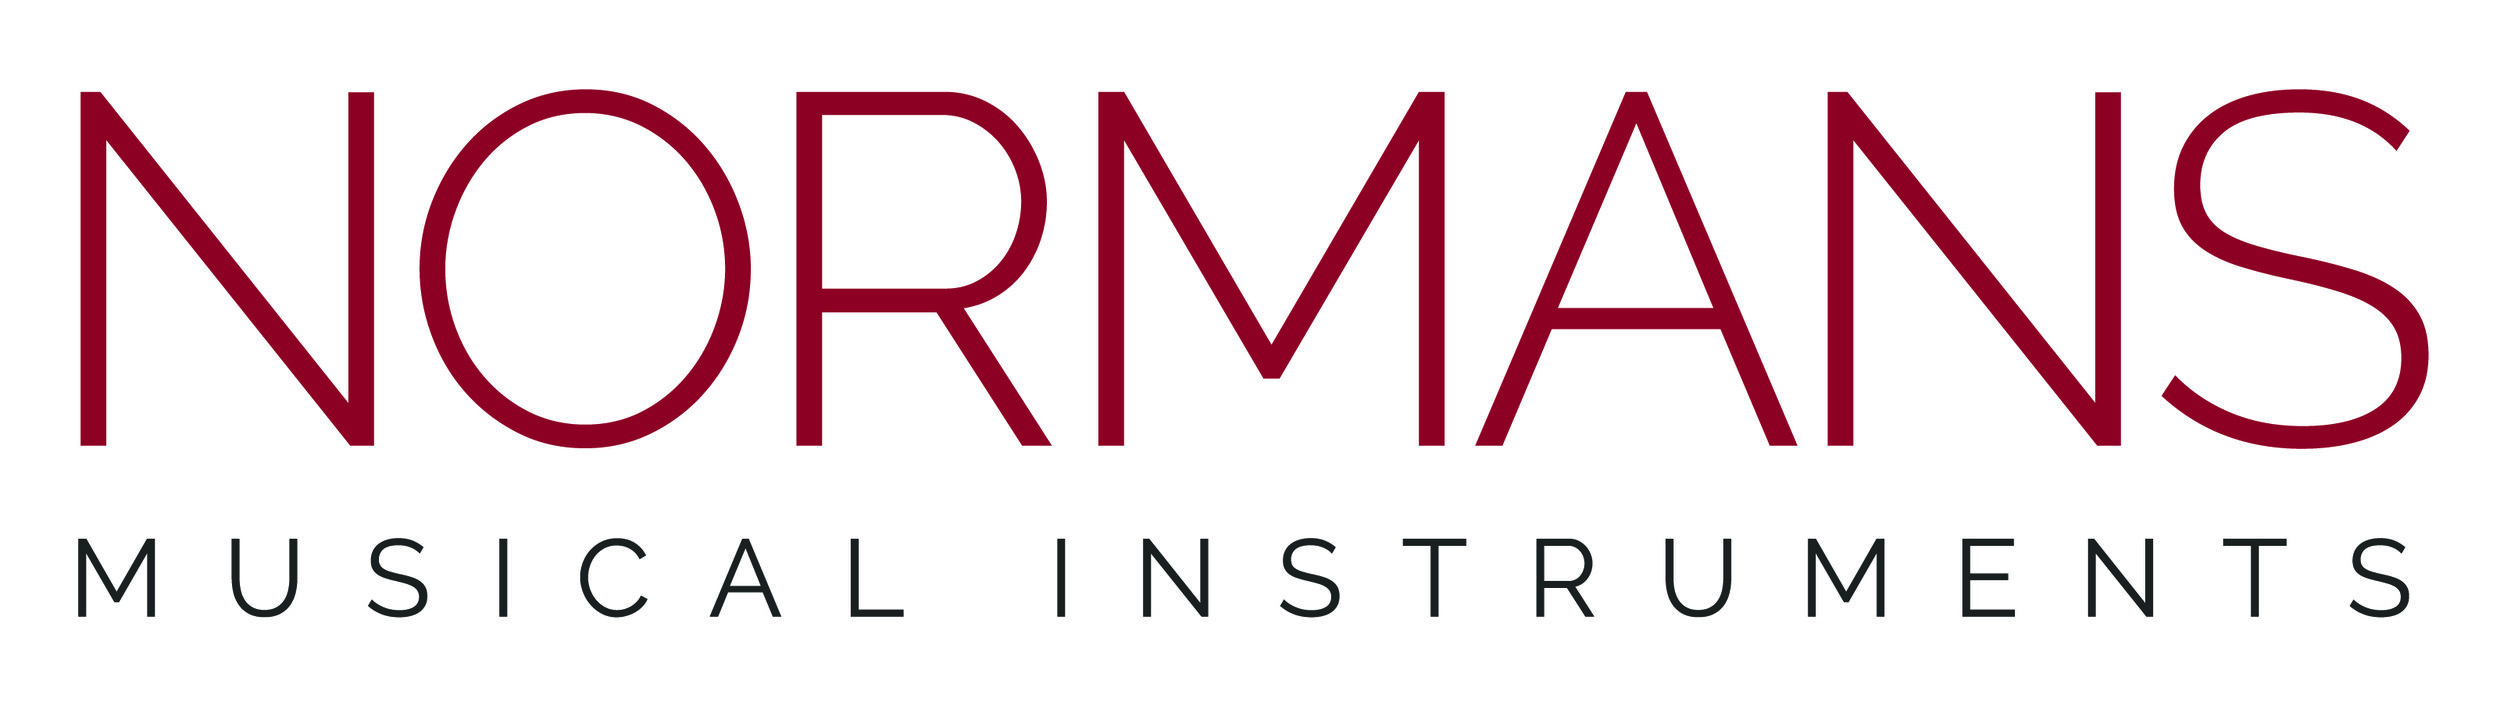 We're proud to have partnered with  Normans Instruments  who are offering their generous support for our Songs & Smiles groups